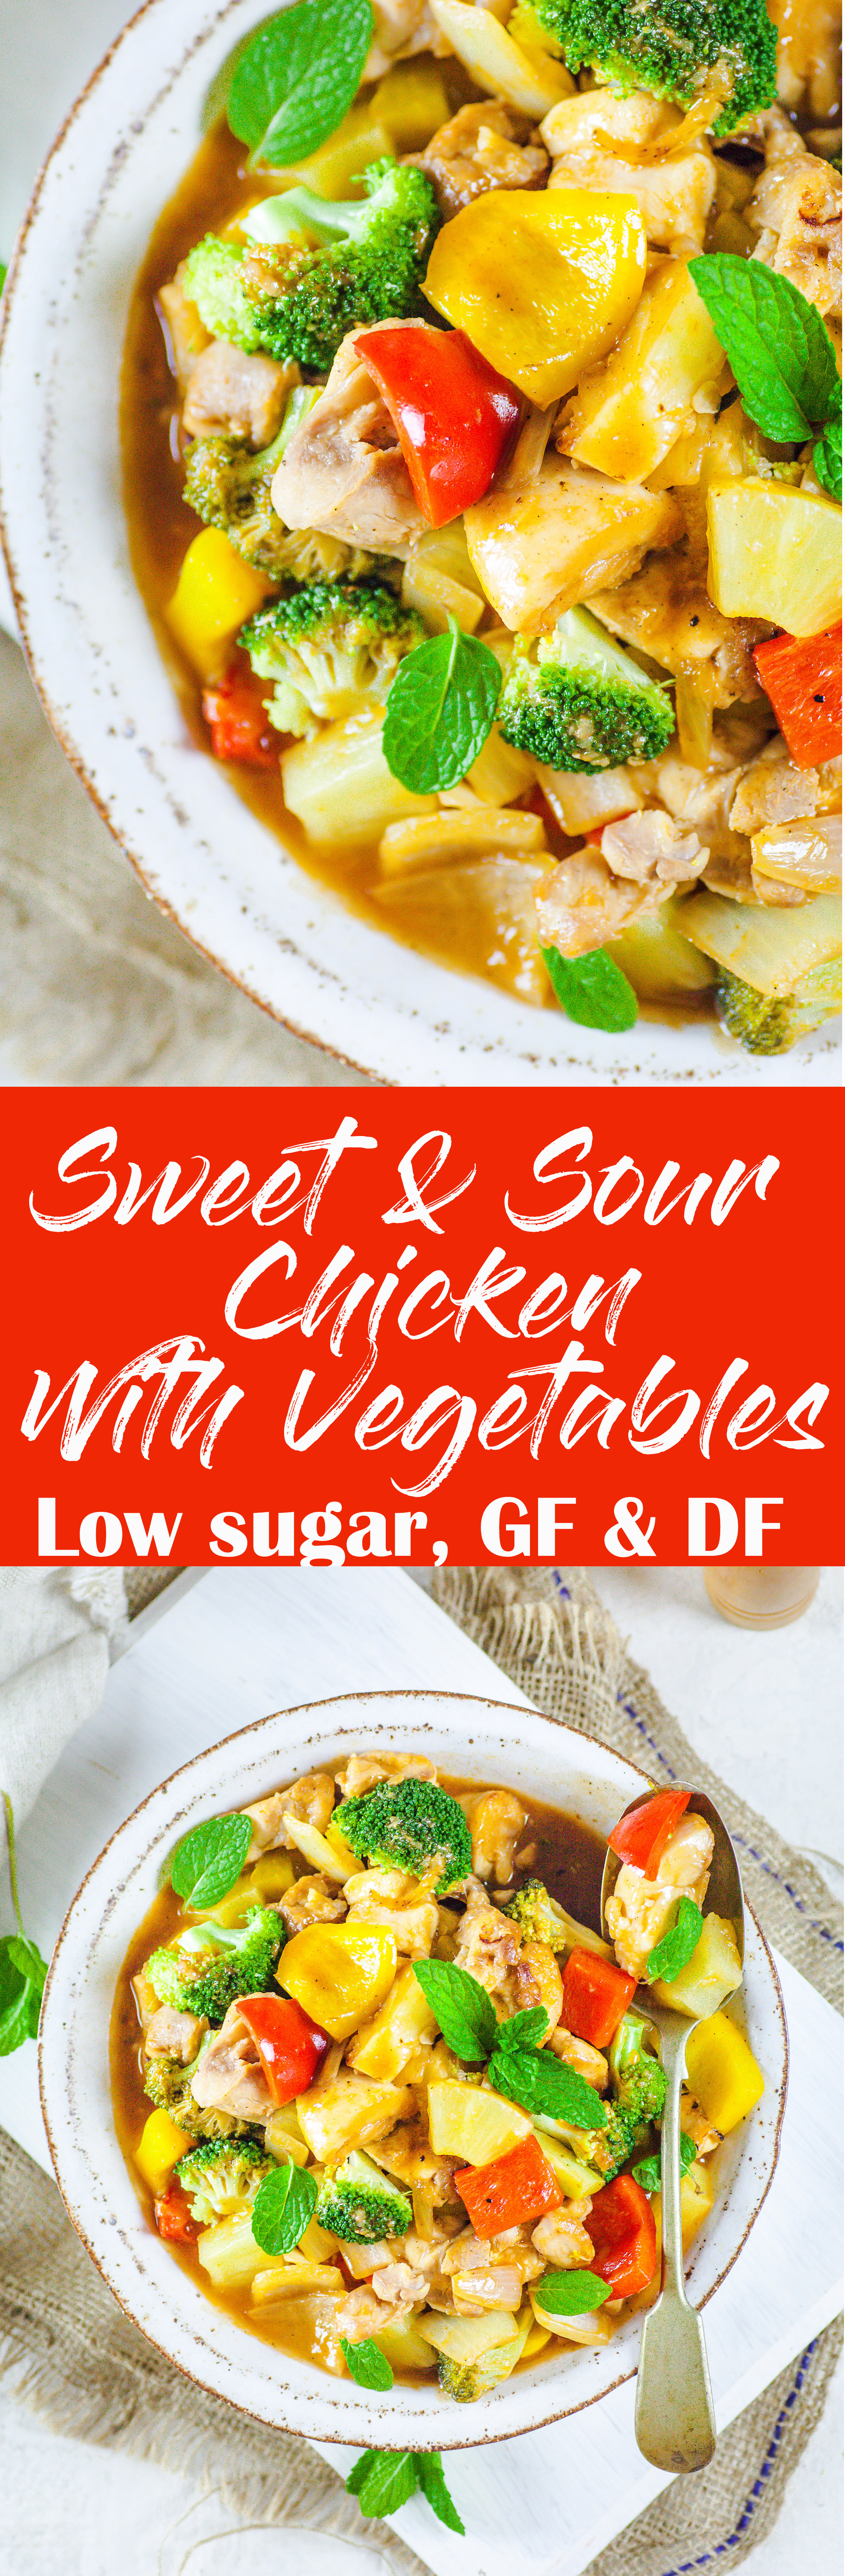 Healthy Sweet & Sour Chicken With Vegetables